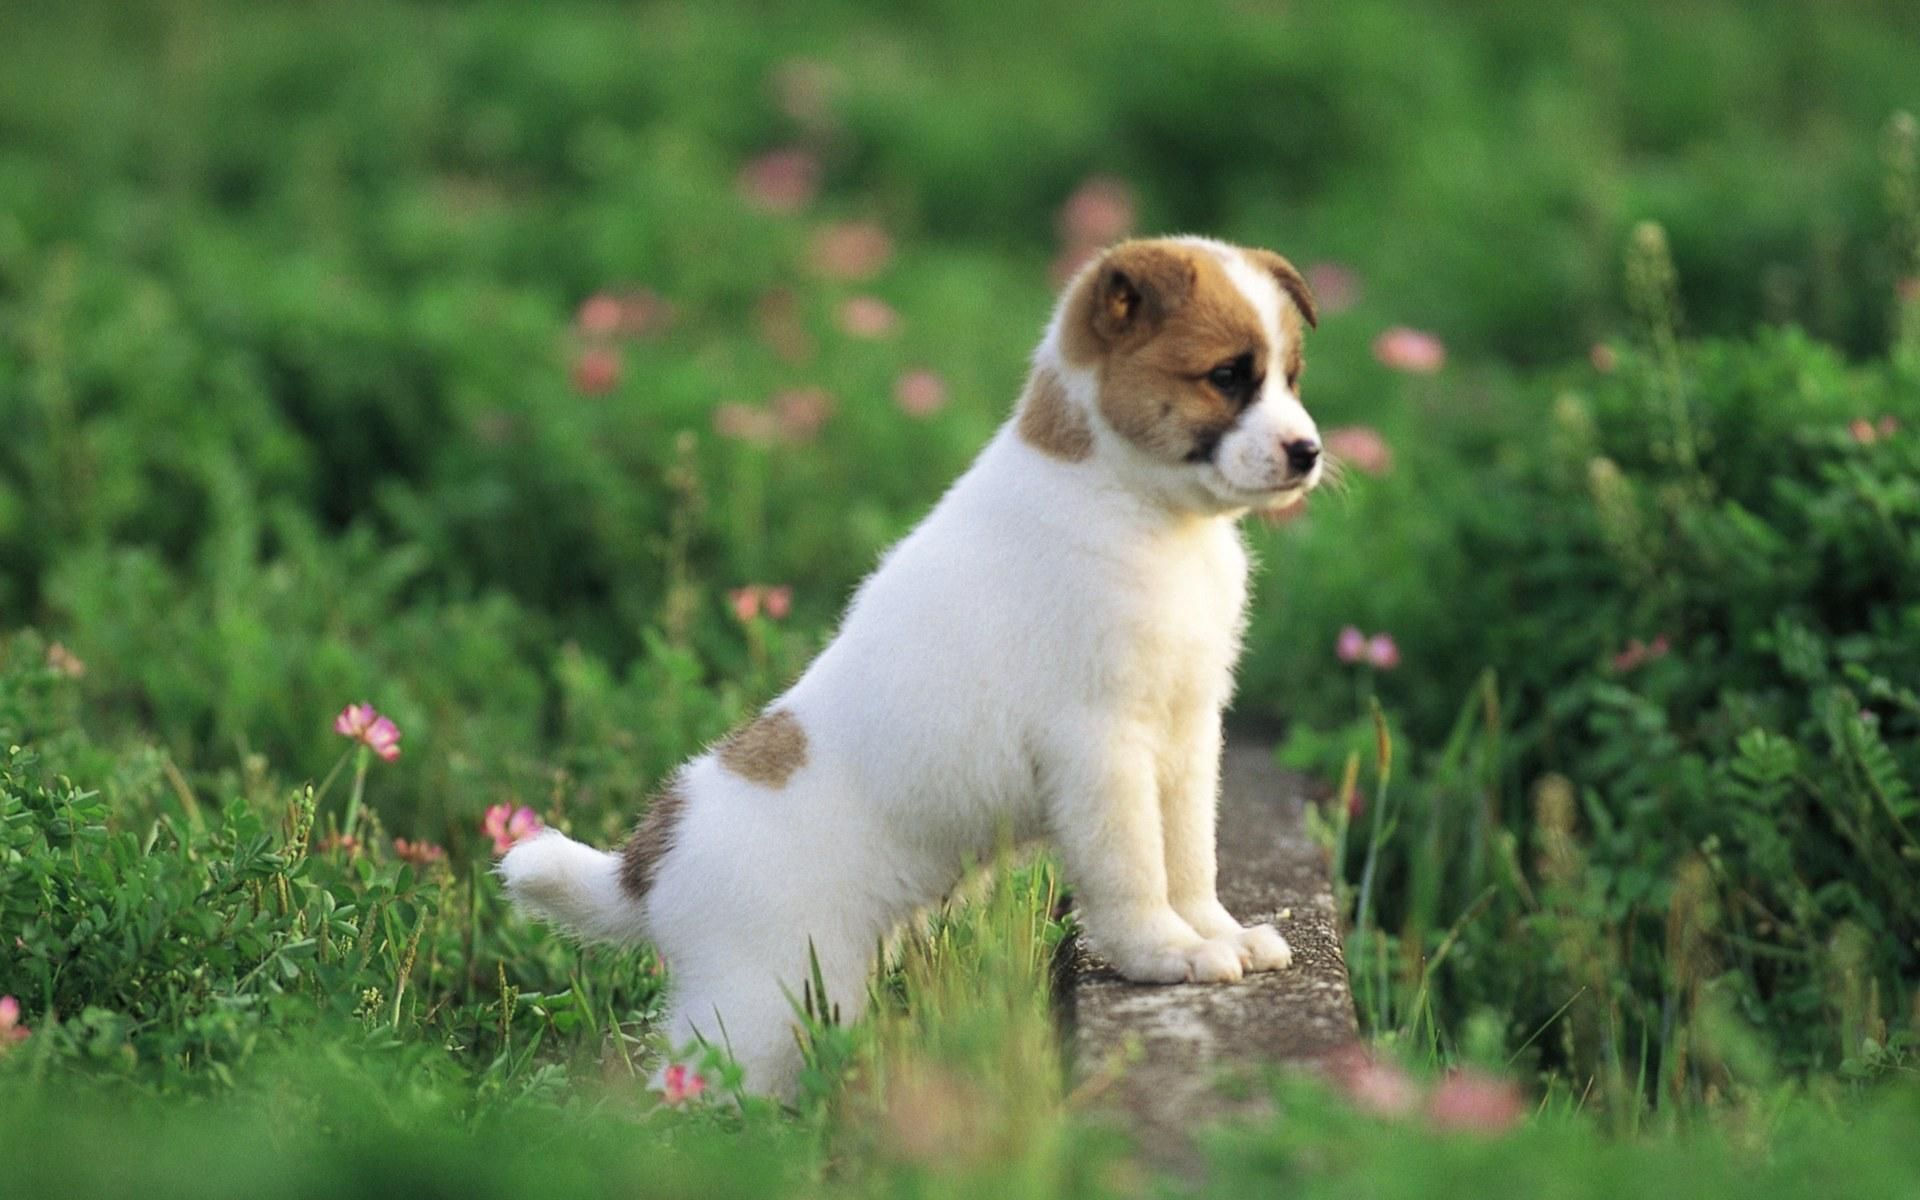 Puppies Wallpaper Pretty Dog Wallpaper Pretty Dogs Cute Puppy Wallpaper Cute Animals